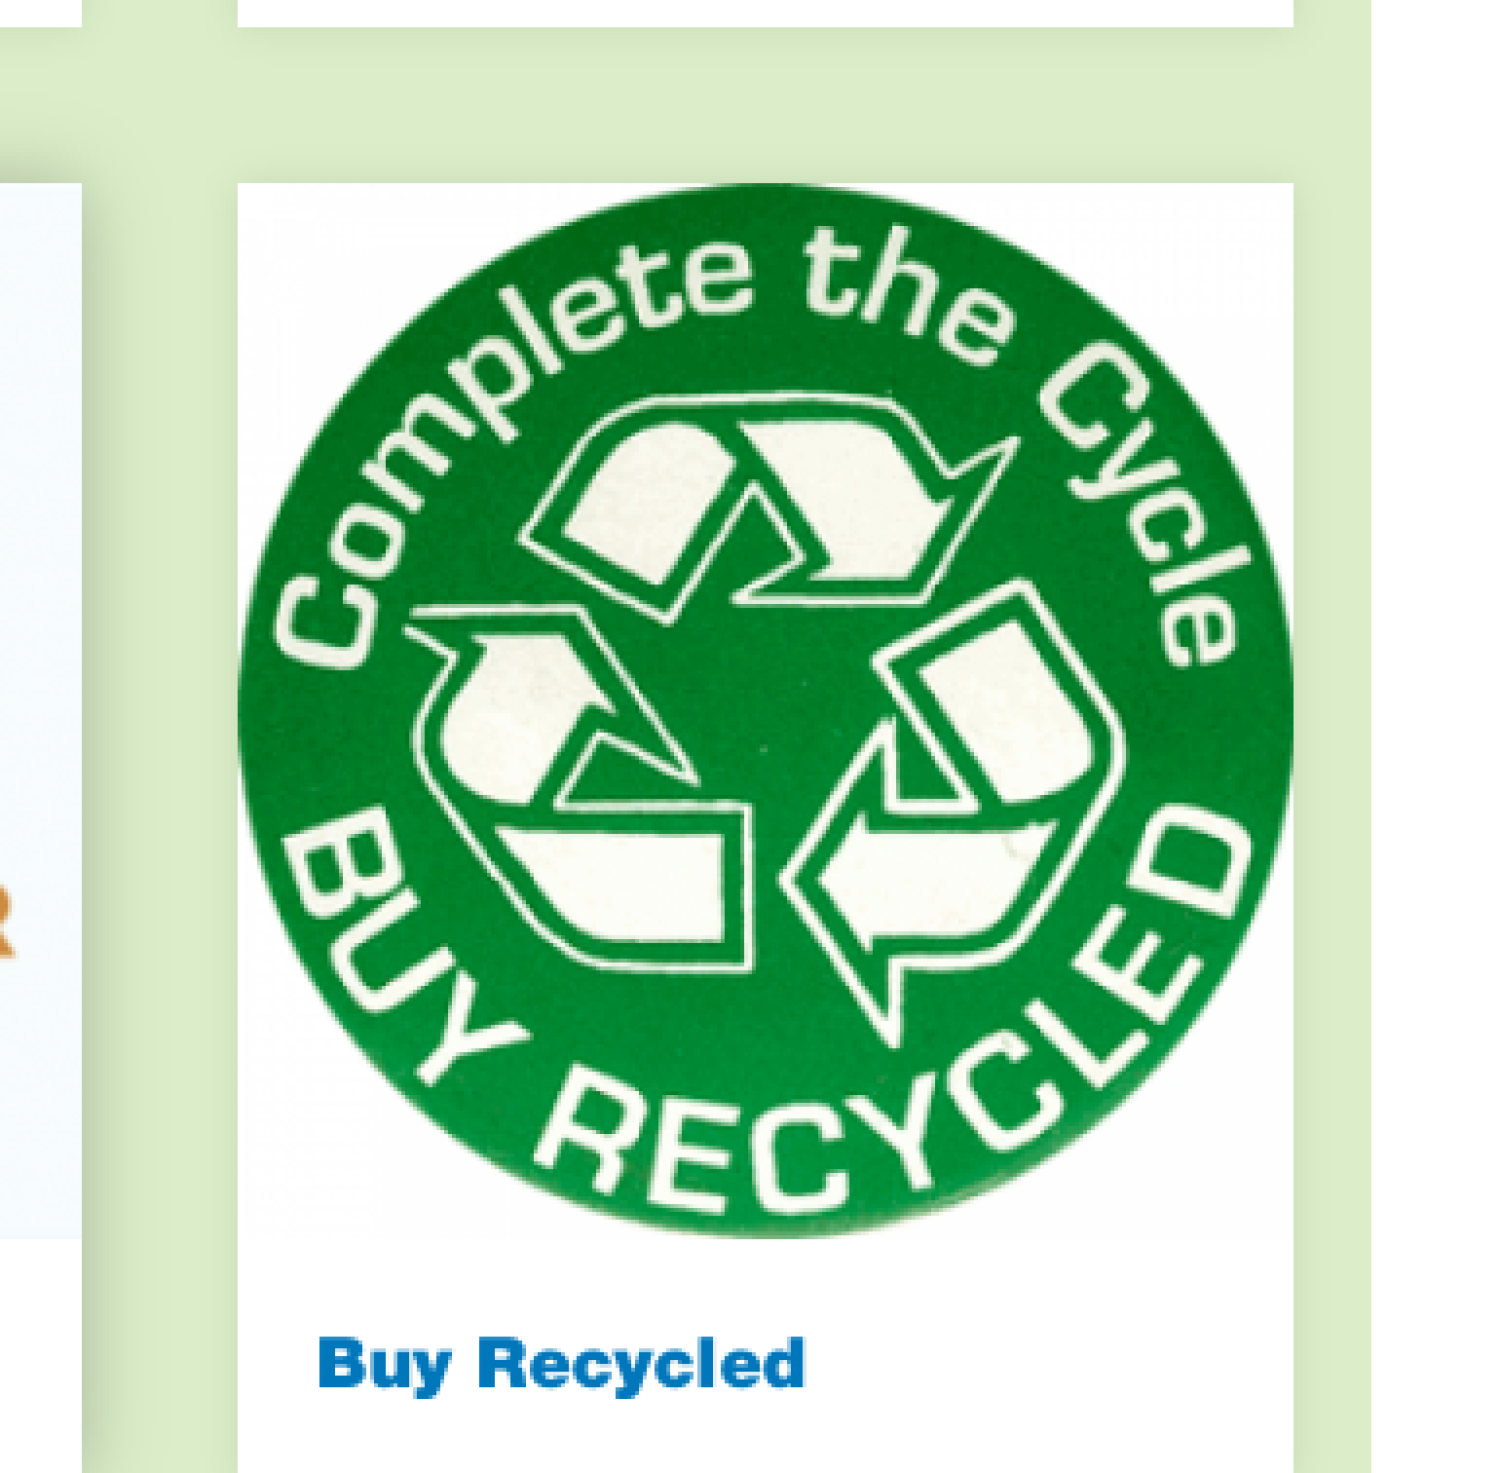 Complete the Cycle... Buy Recycled